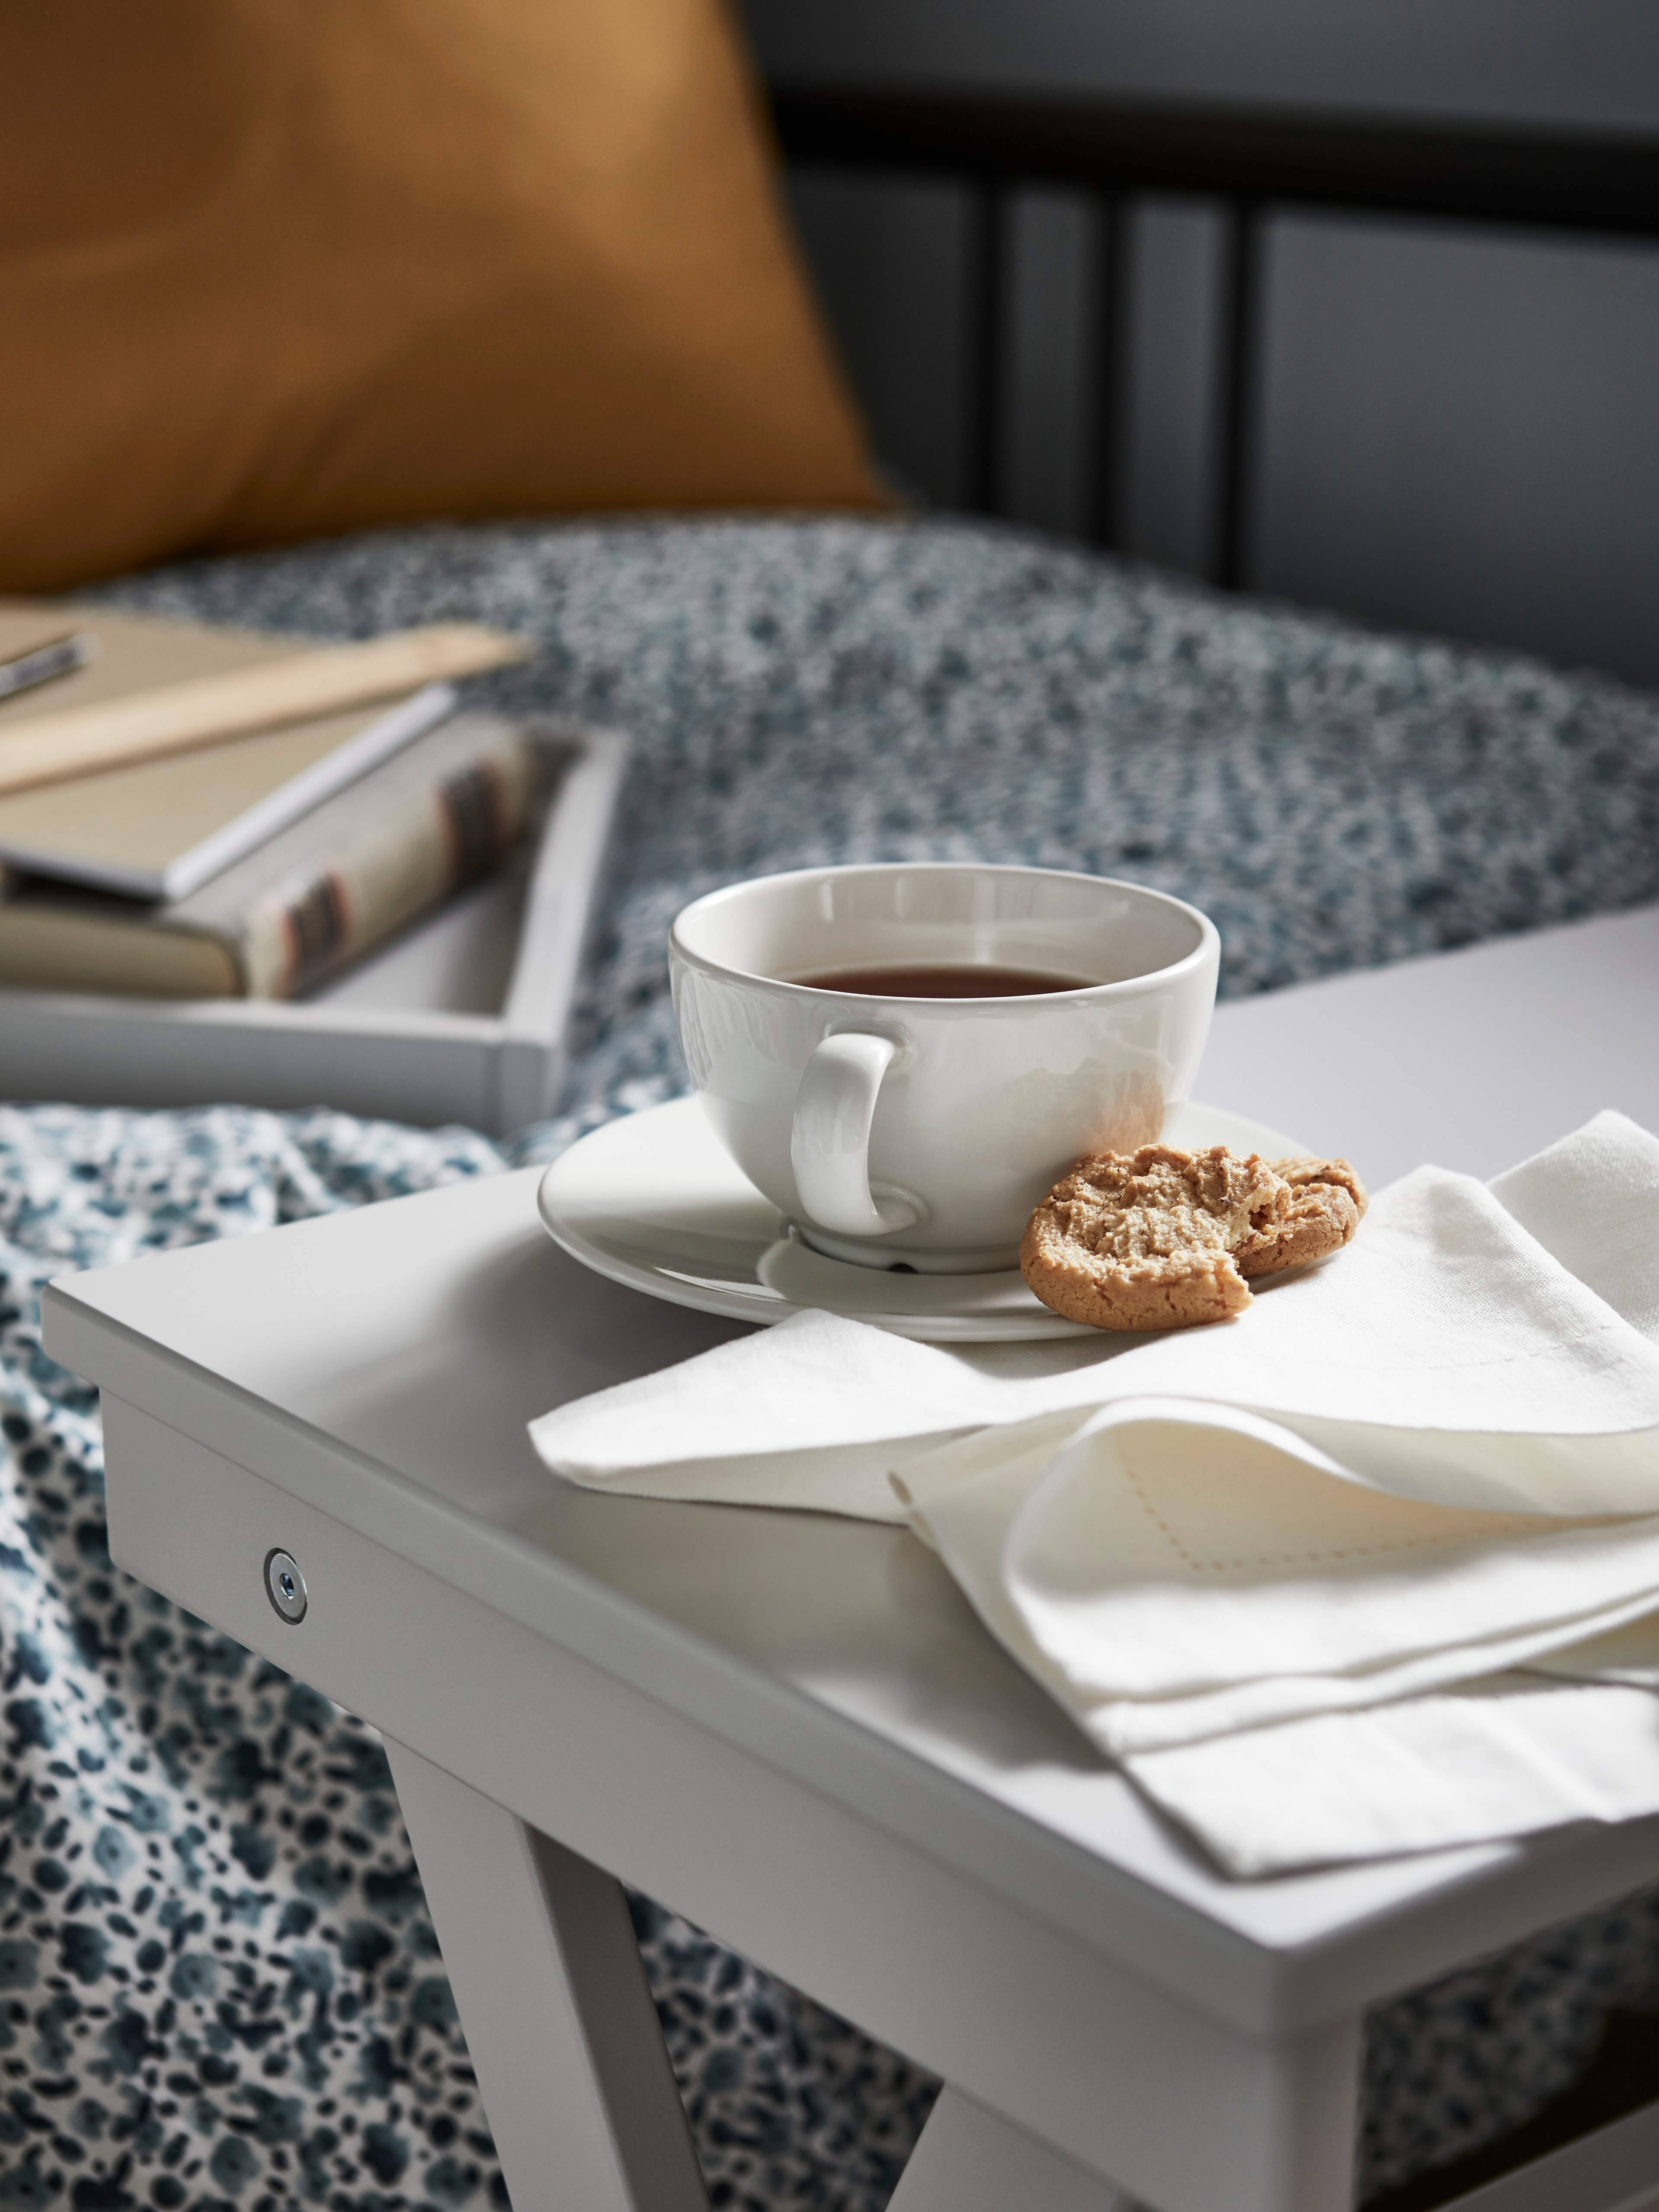 A VARDAGEN off-white teacup with saucer holds tea and a biscuit. It sits on a grey tray table with a fabric tablecloth.